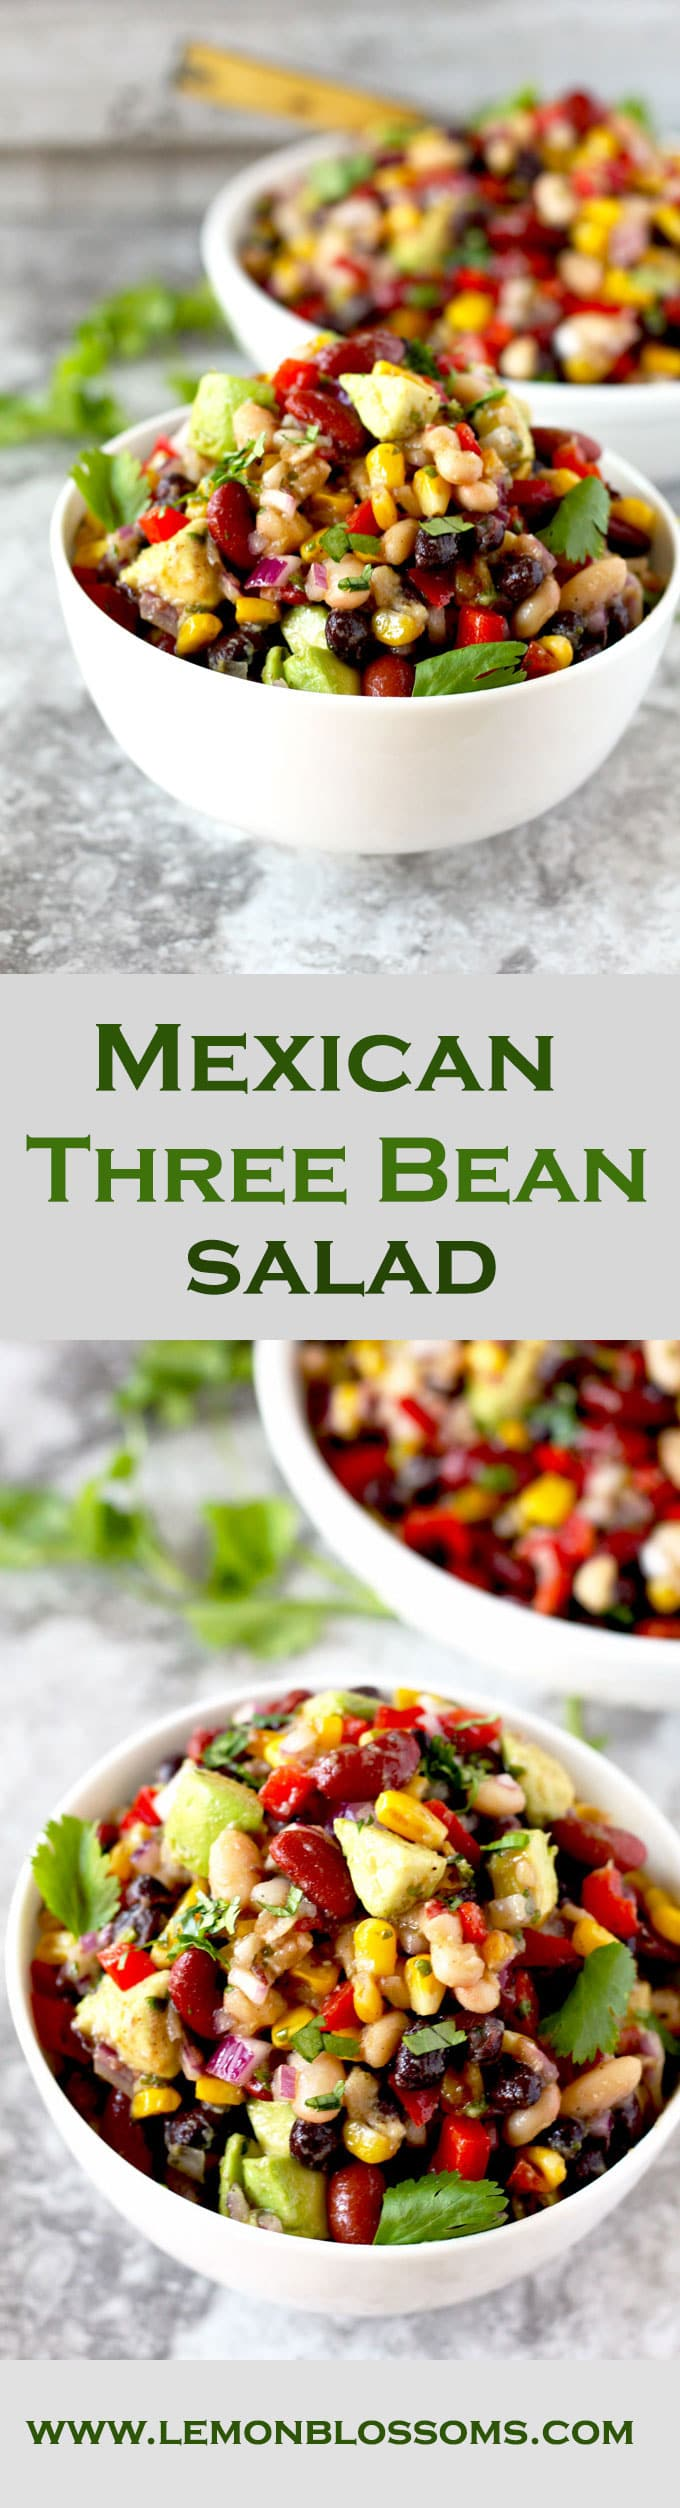 This protein-rich Mexican Three Bean Salad is loaded with southwestern ...